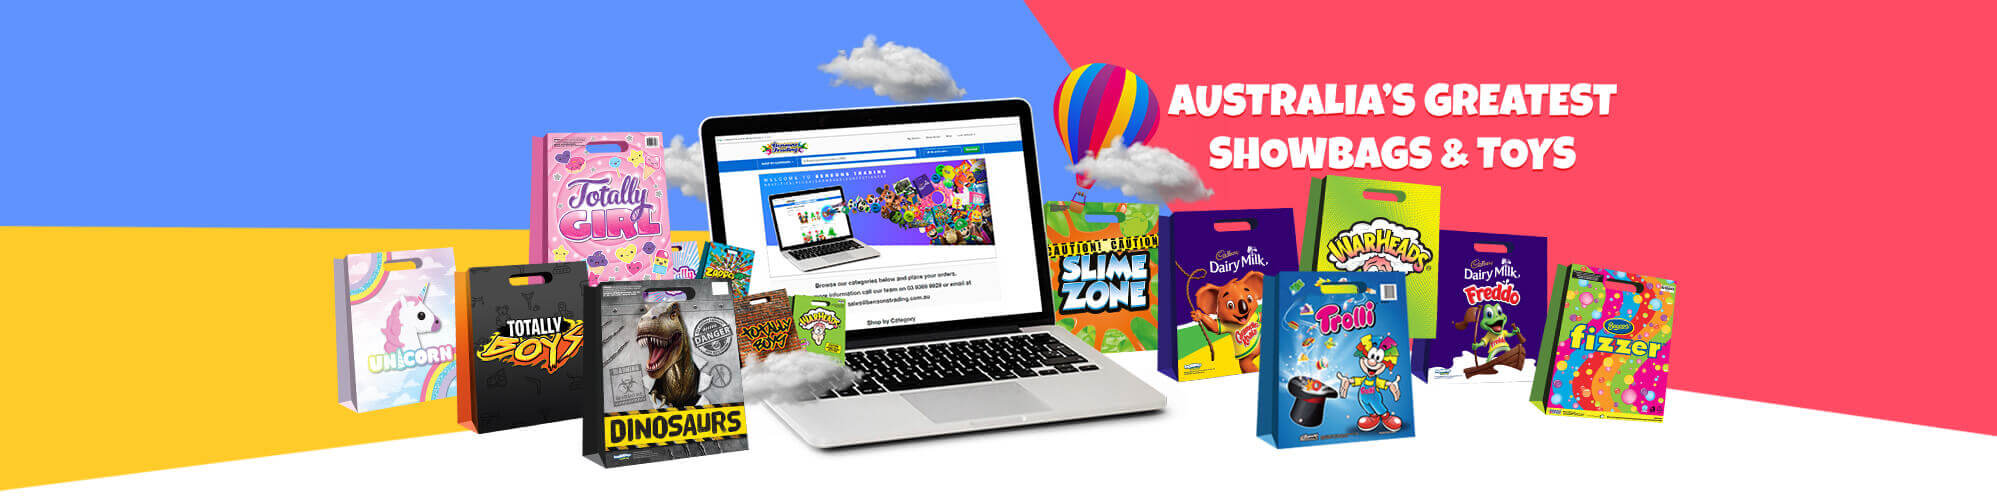 Bensons Showbags Wholesale Toys